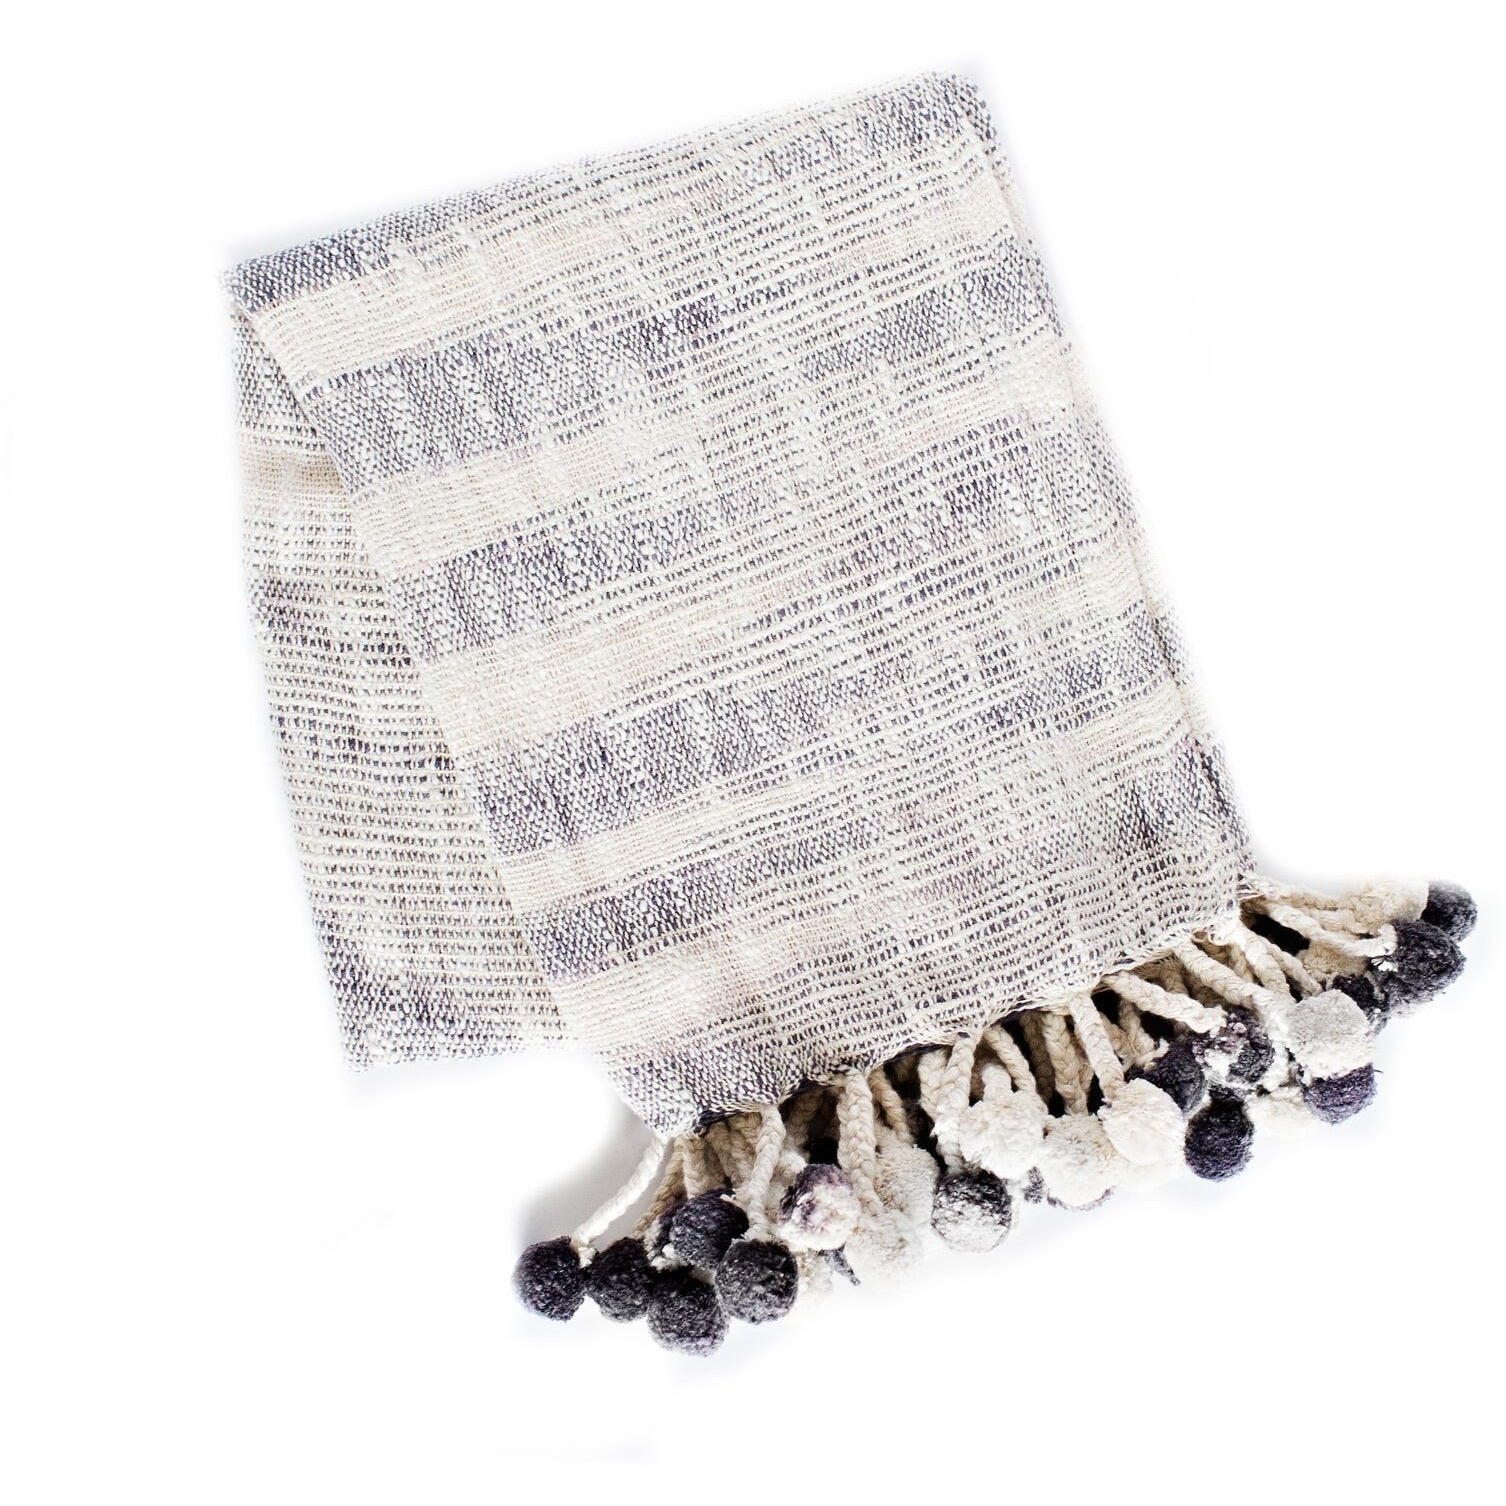 Woven PomPom Throw - Charcoal